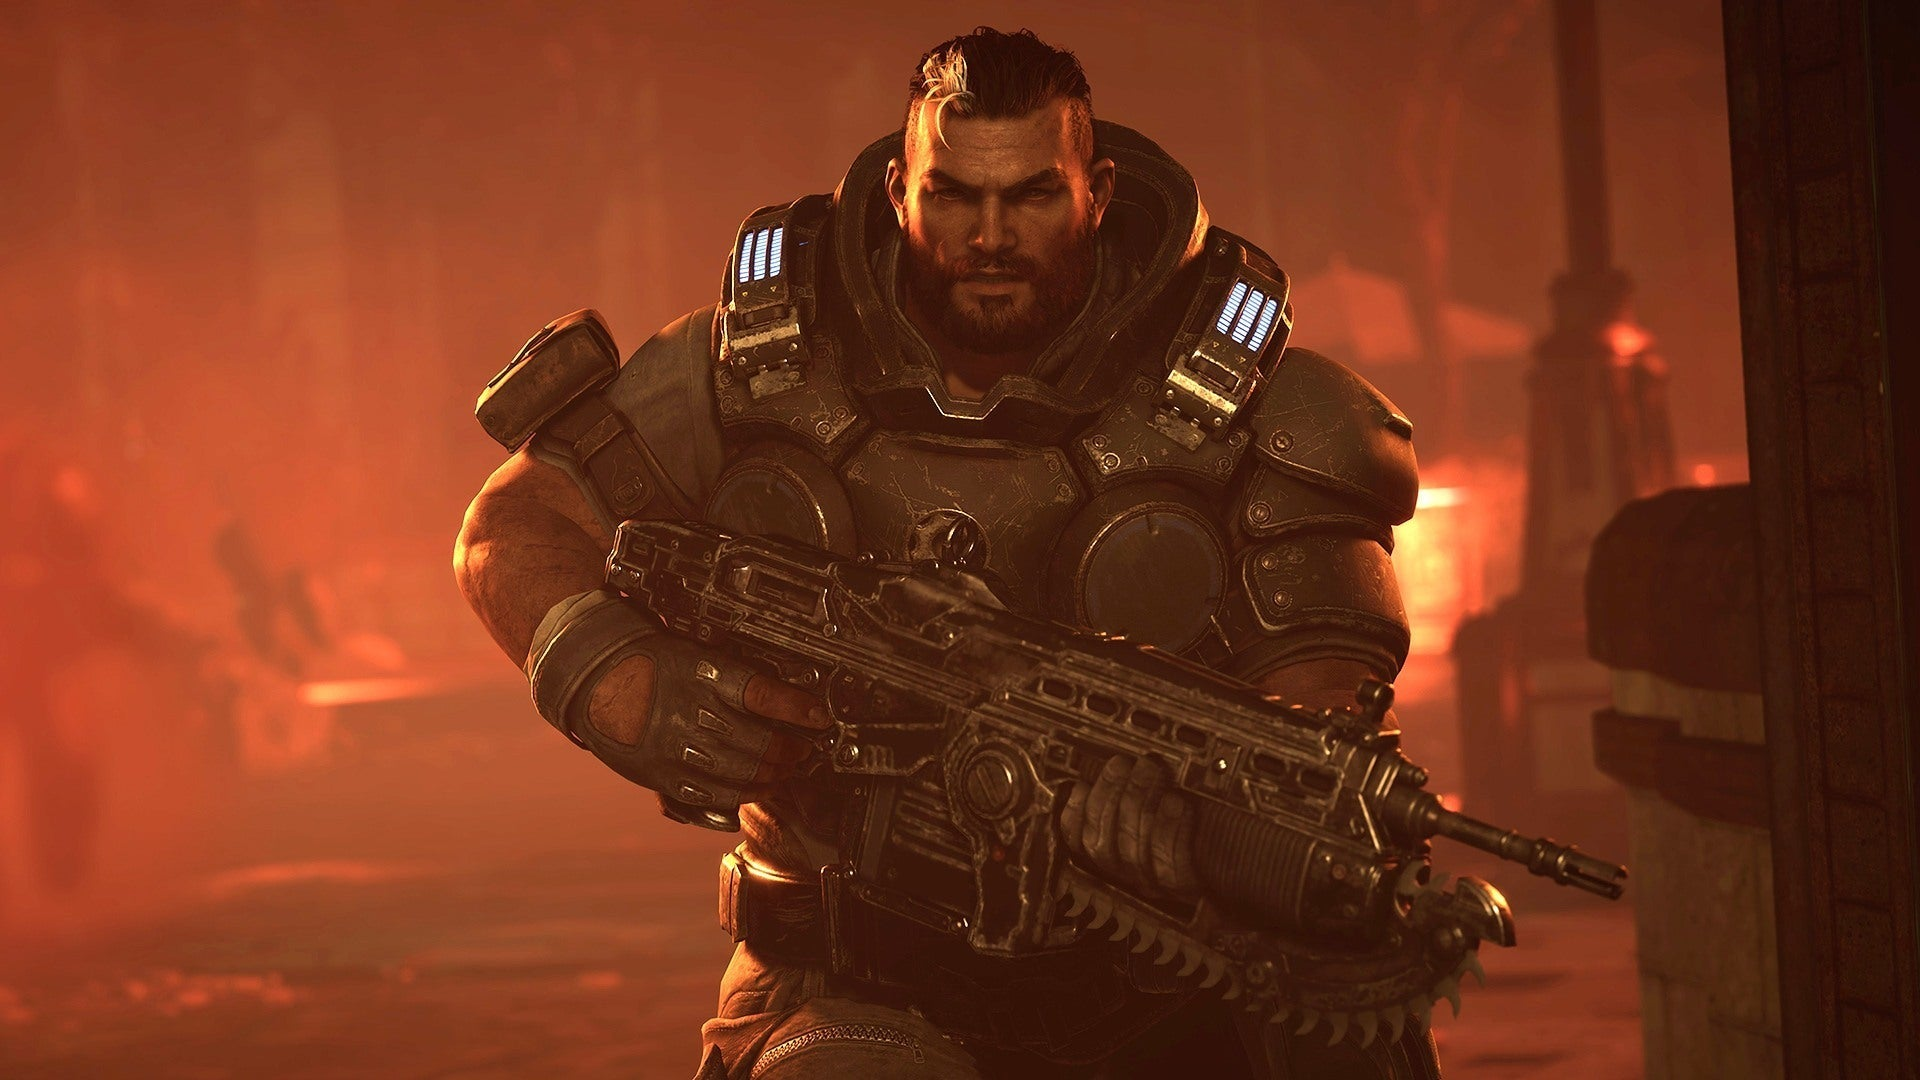 gears tactics 1621906480431.jpeg?width=640&fit=bounds&height=480&quality=20&dpr=0